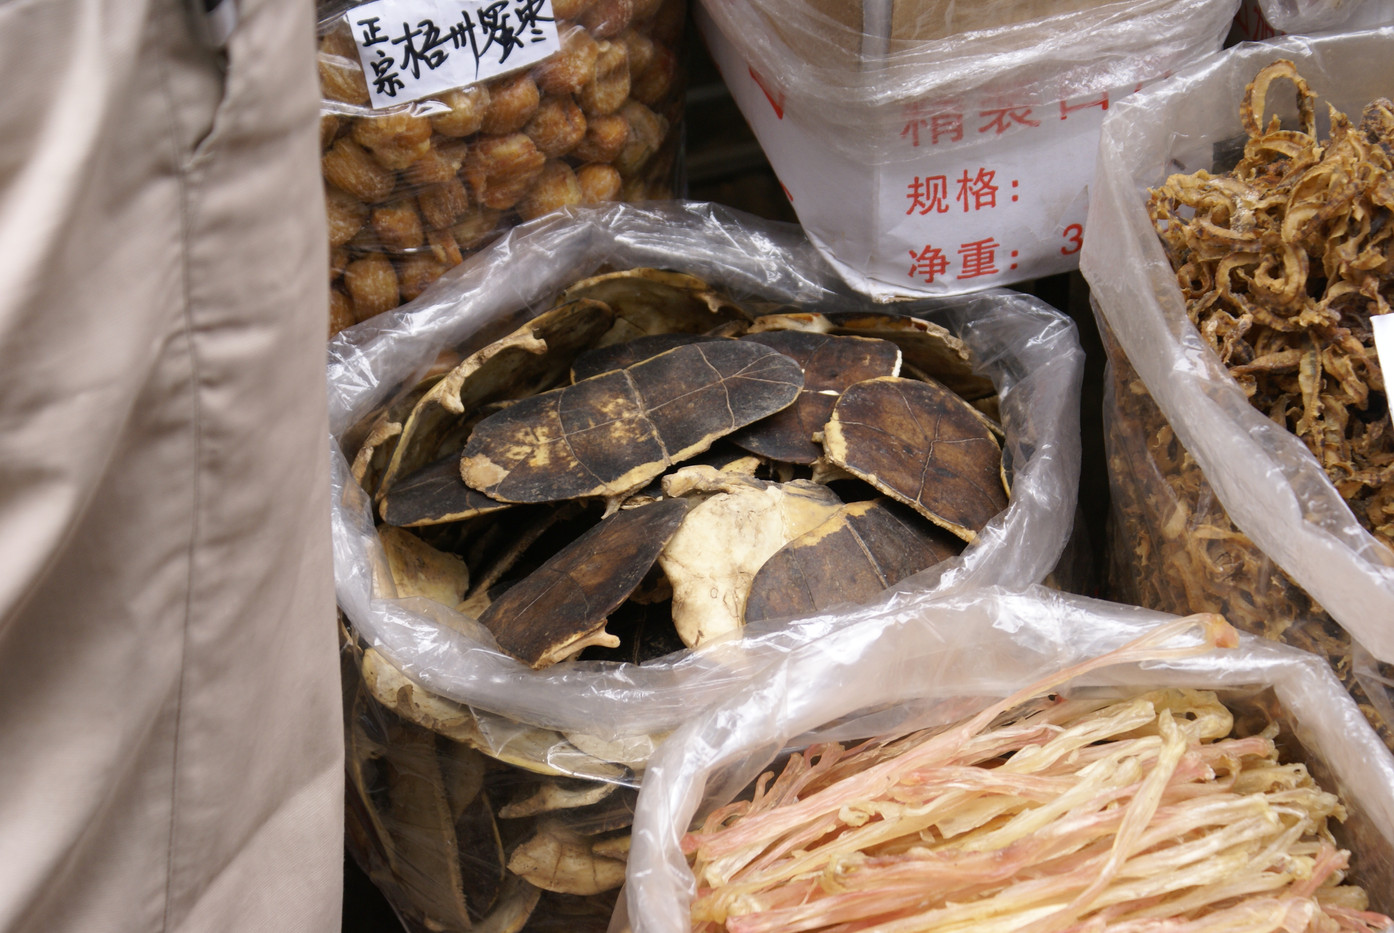 Dried Turtle Shell at the TCM Market in Guangzhou